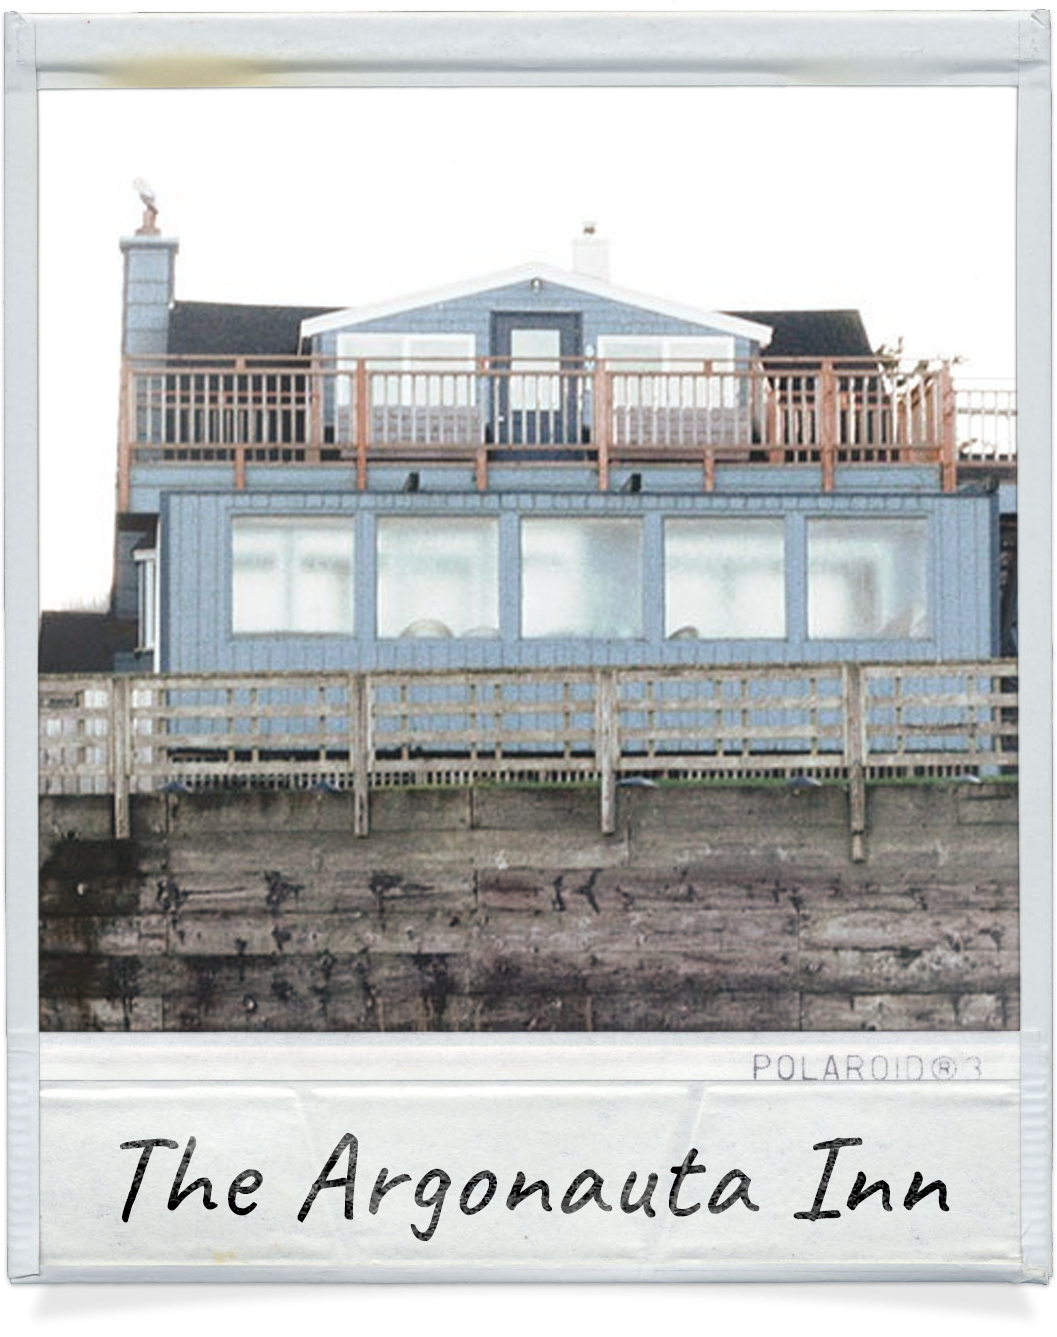 The Aurgonauta inn